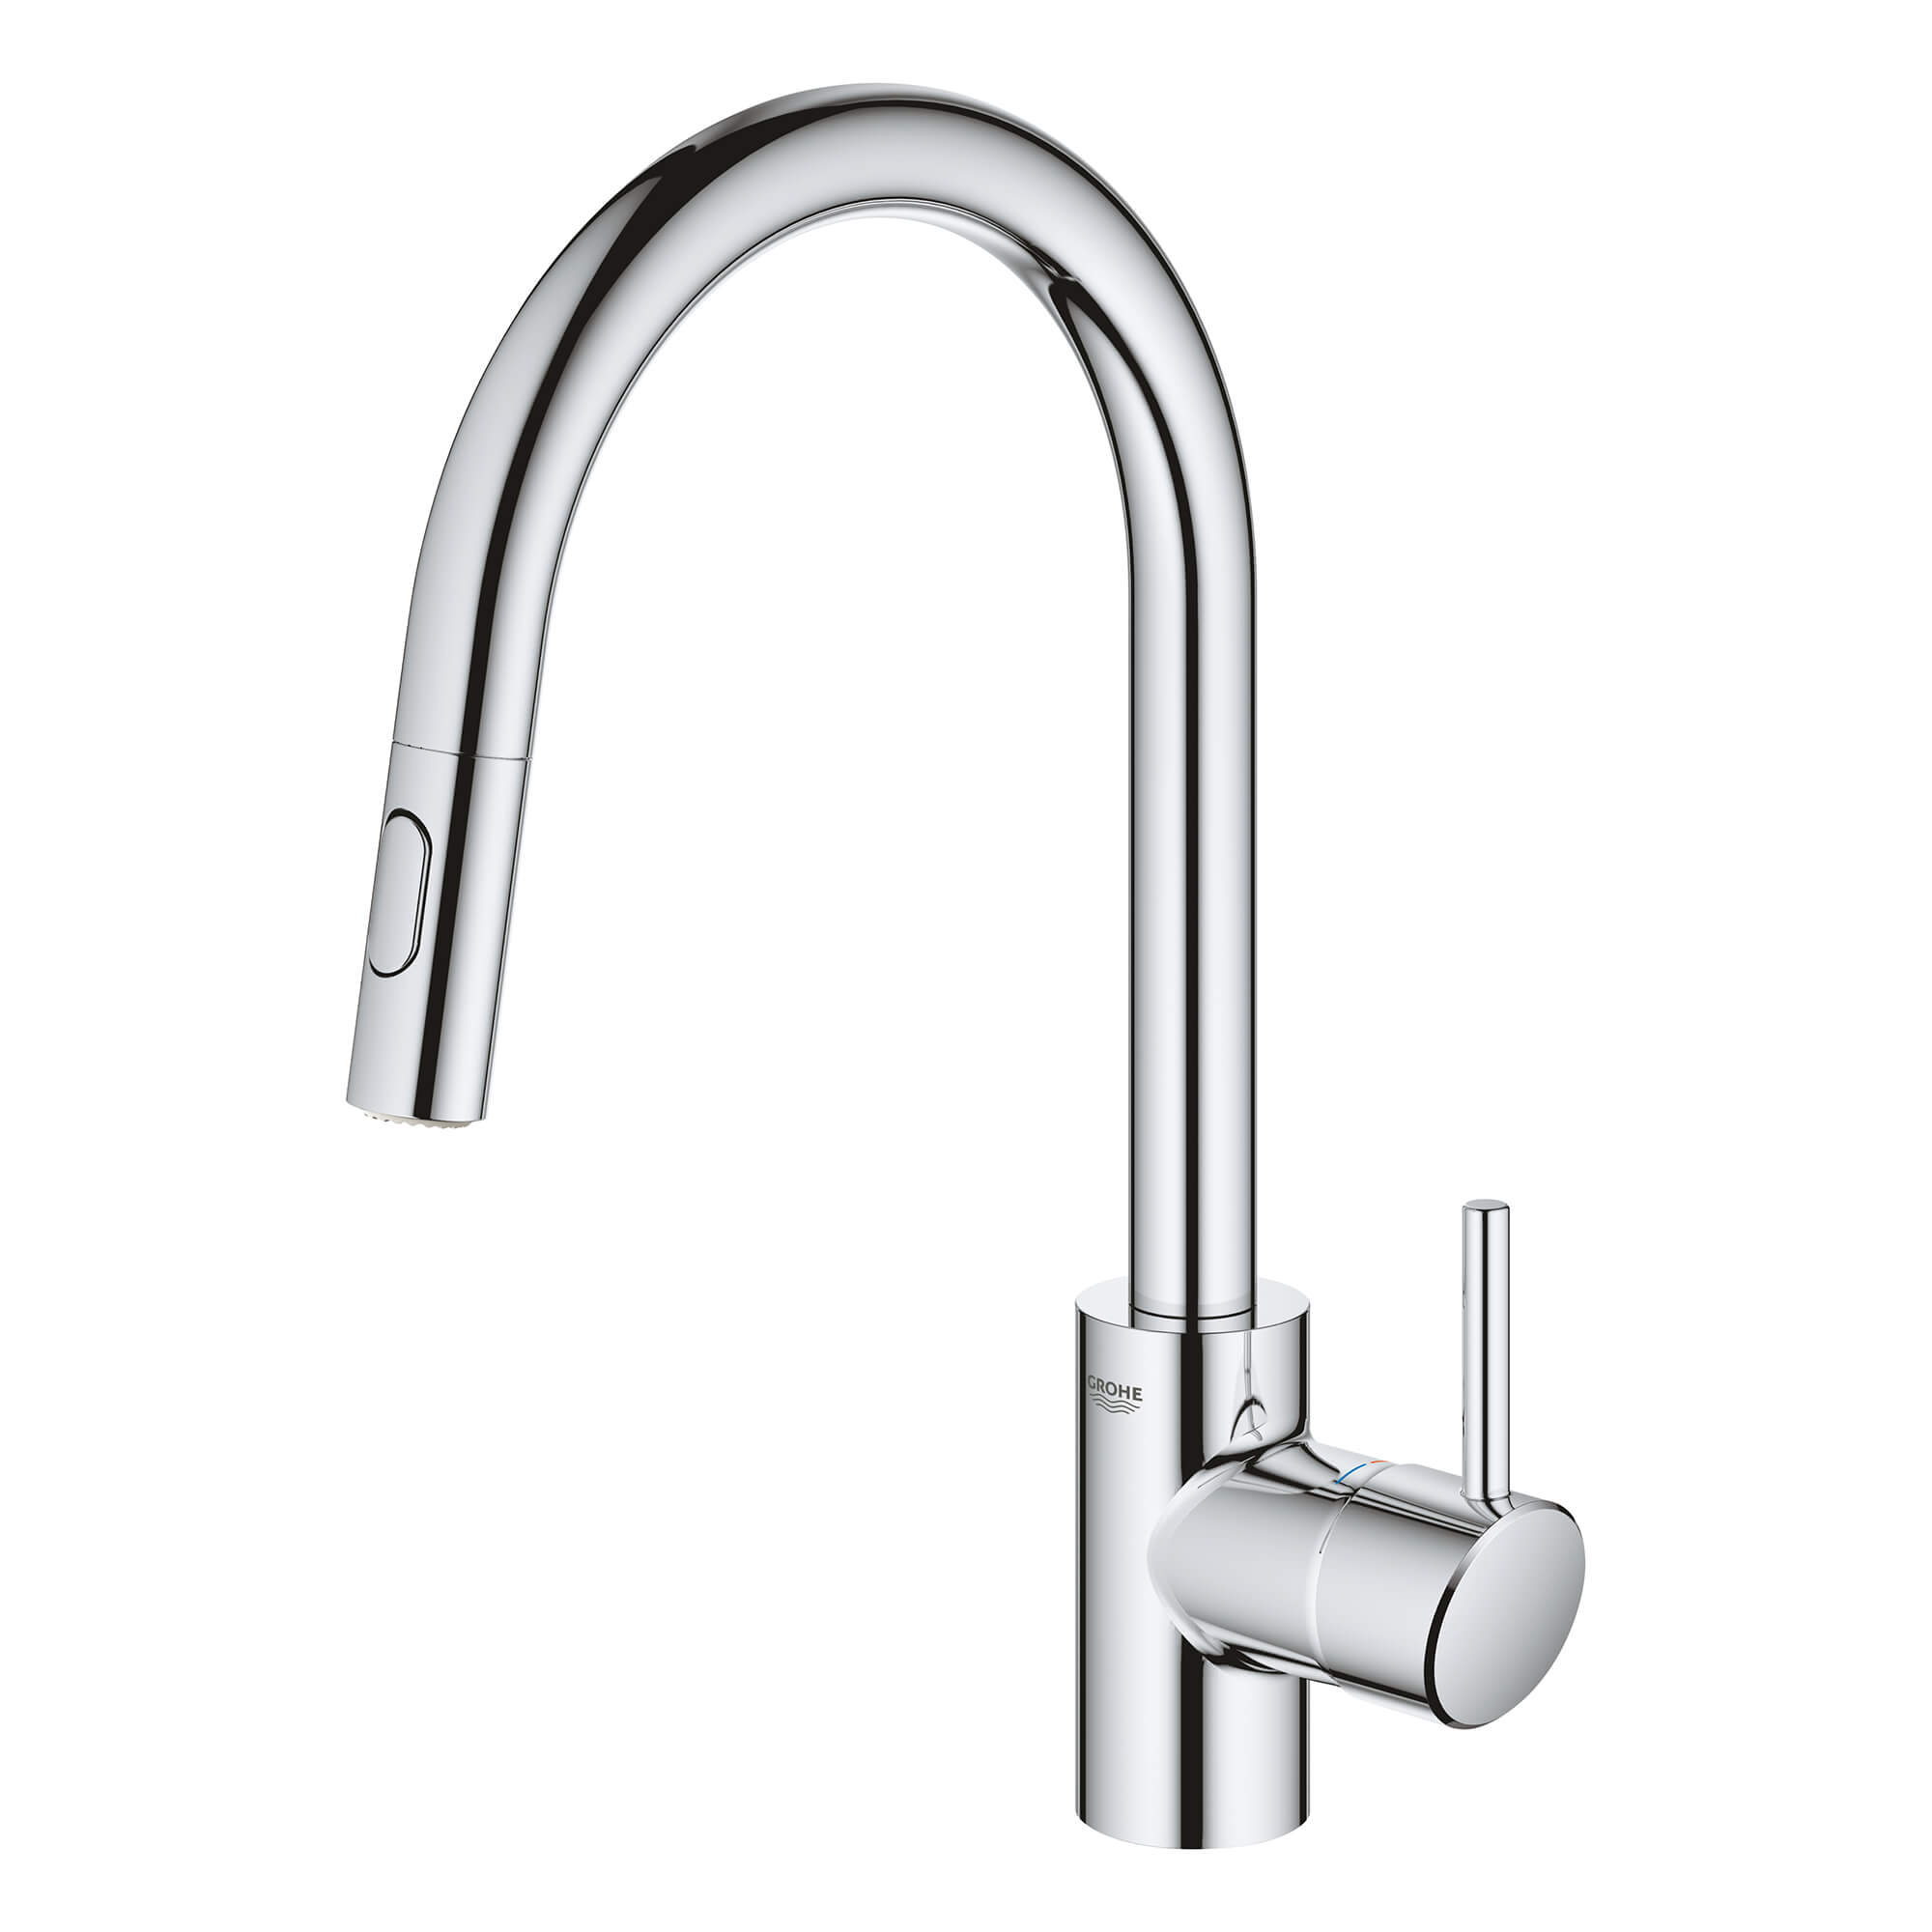 Grohe Concetto Dual Spray Pull Down Eco GROHE CHROME